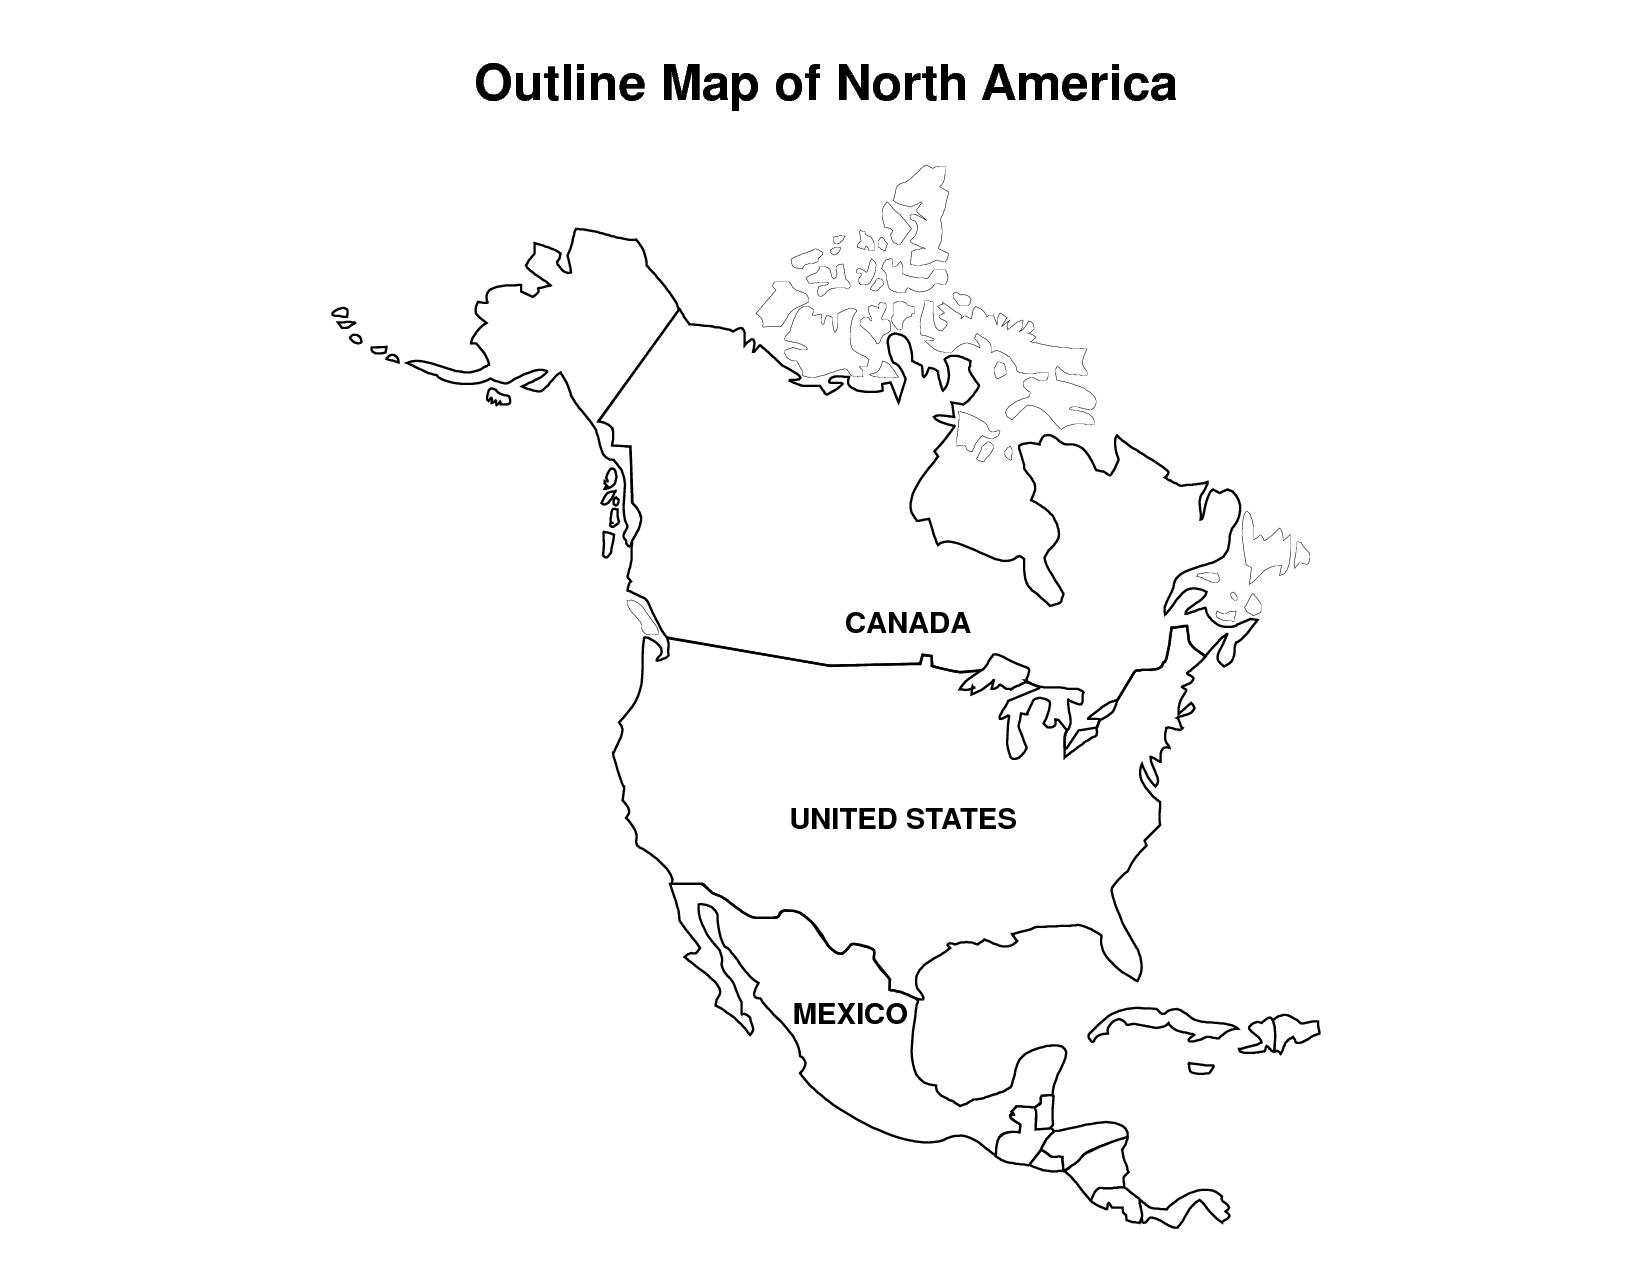 outline map of united states and mexico Pin by Jessica Gomez on Homeschool | North america map, America